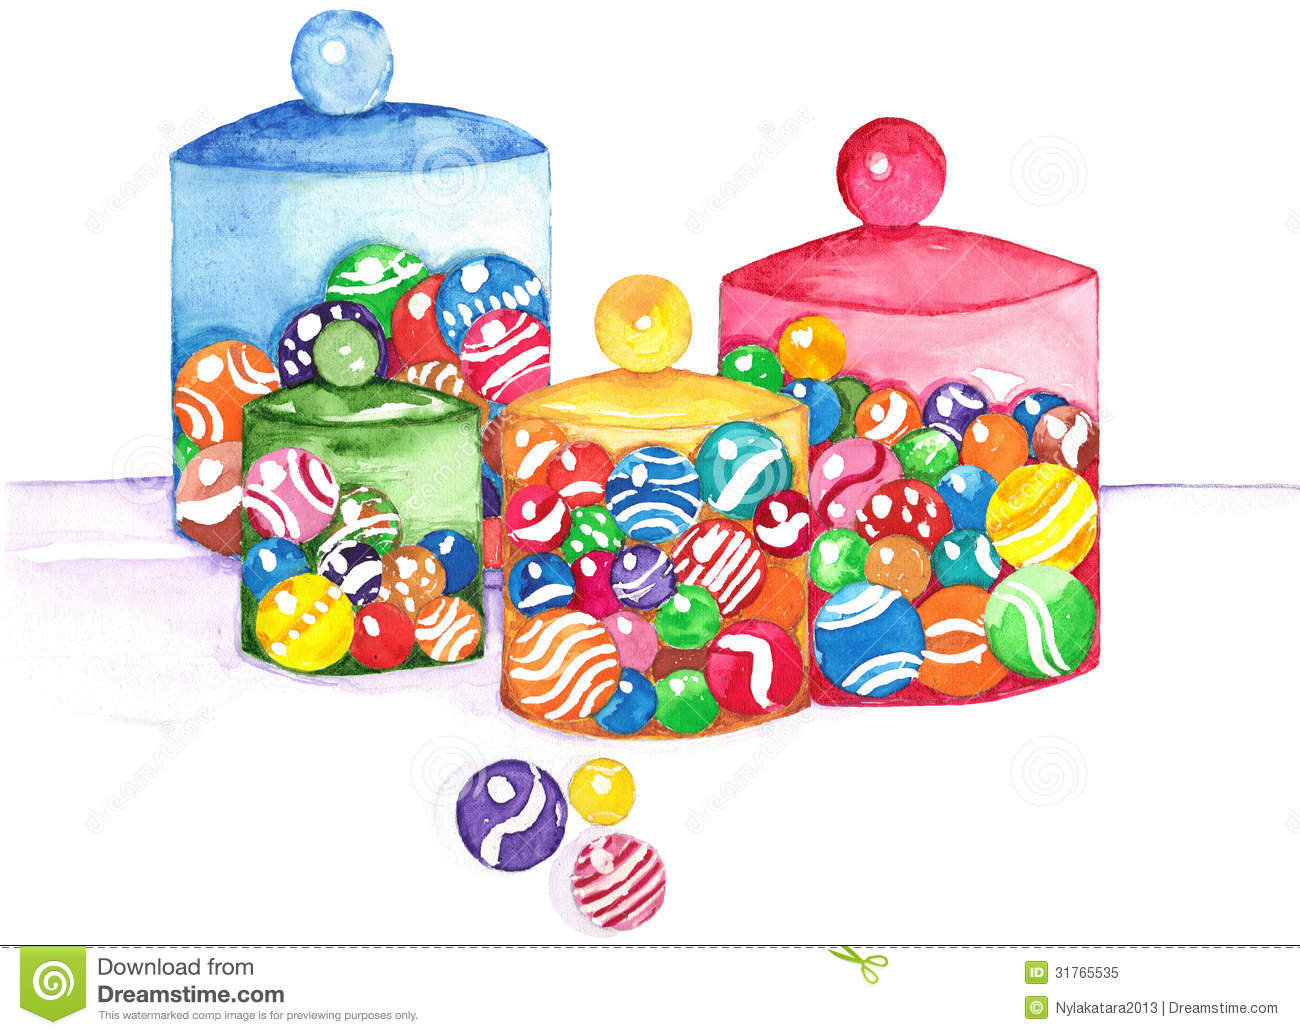 Bright Colored Marbles : Marbles in jars watercolor stock illustration